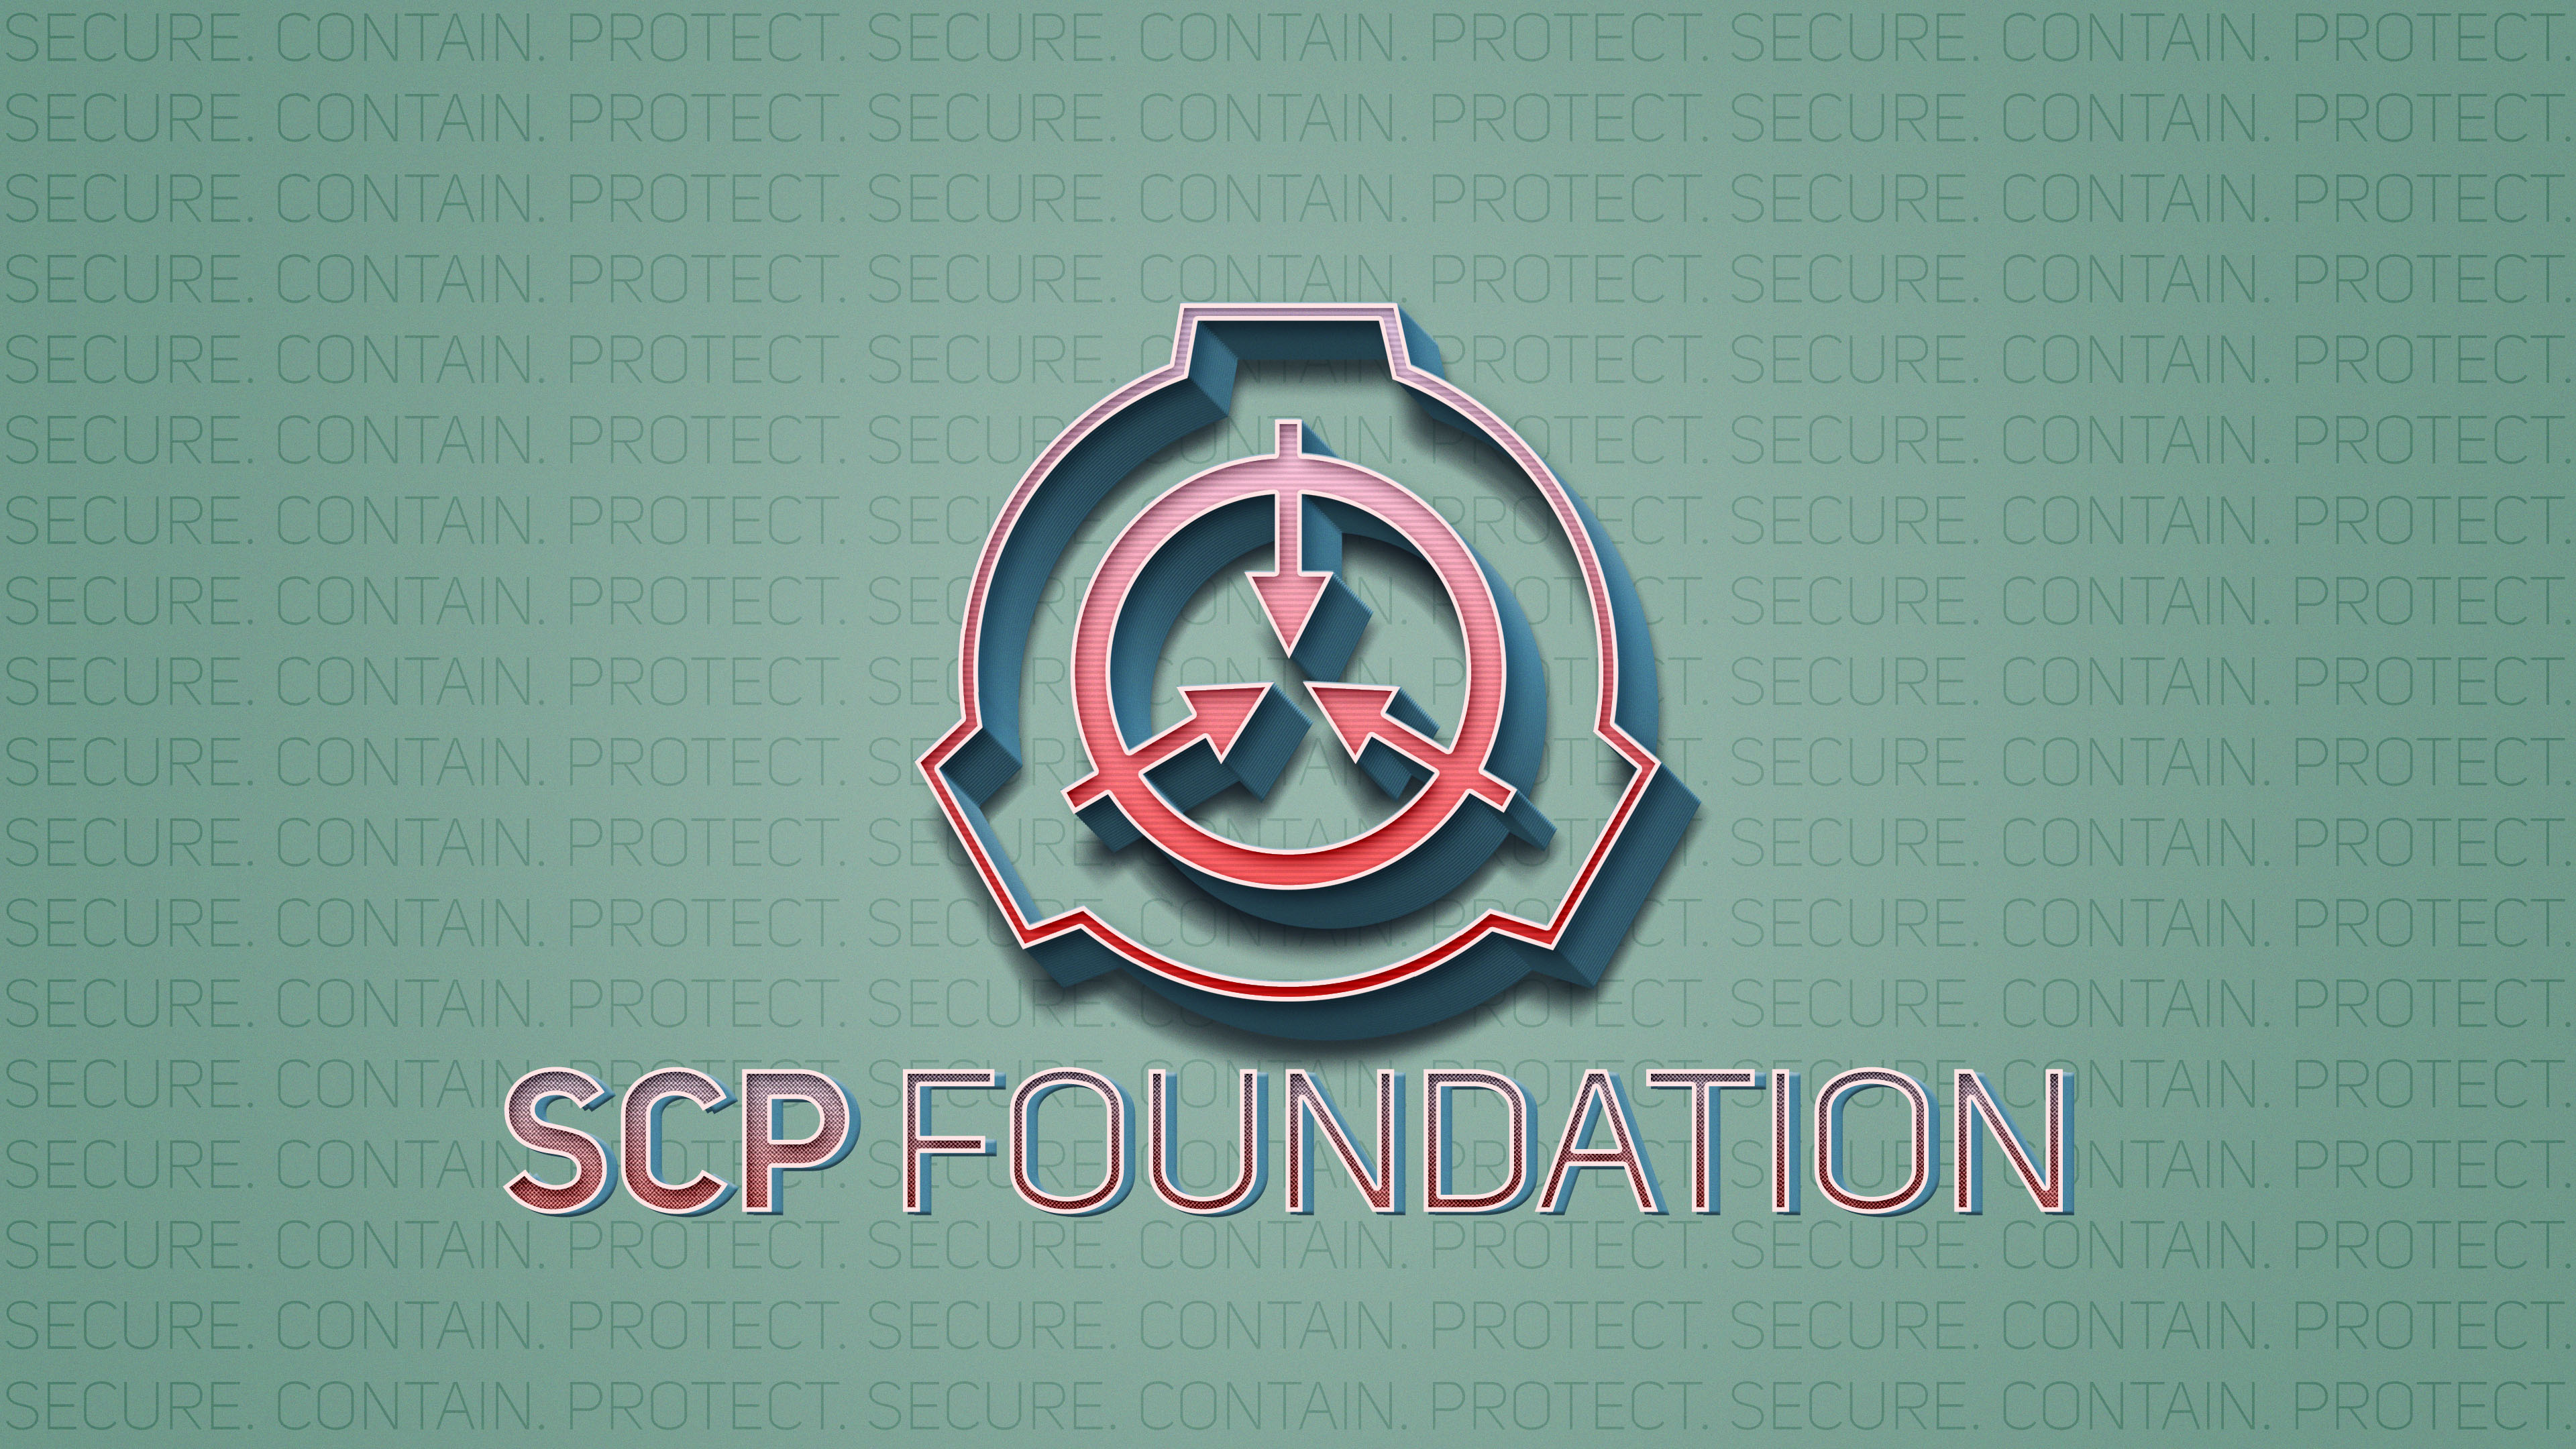 scp%20retro%20wallpaper%202.jpg